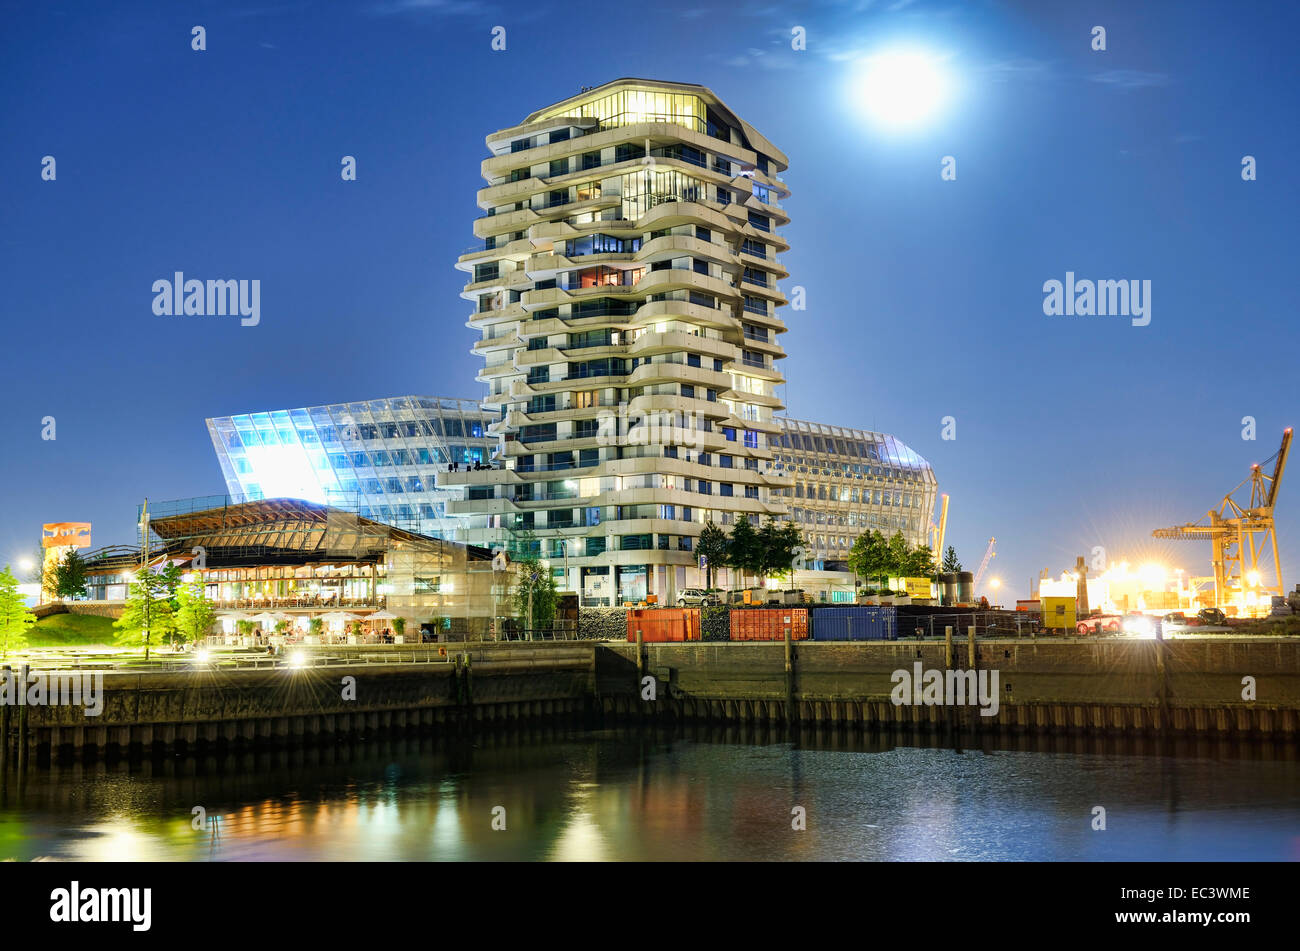 Marco Polo Tower and Unilever building in Hamburg, Germany - Stock Image